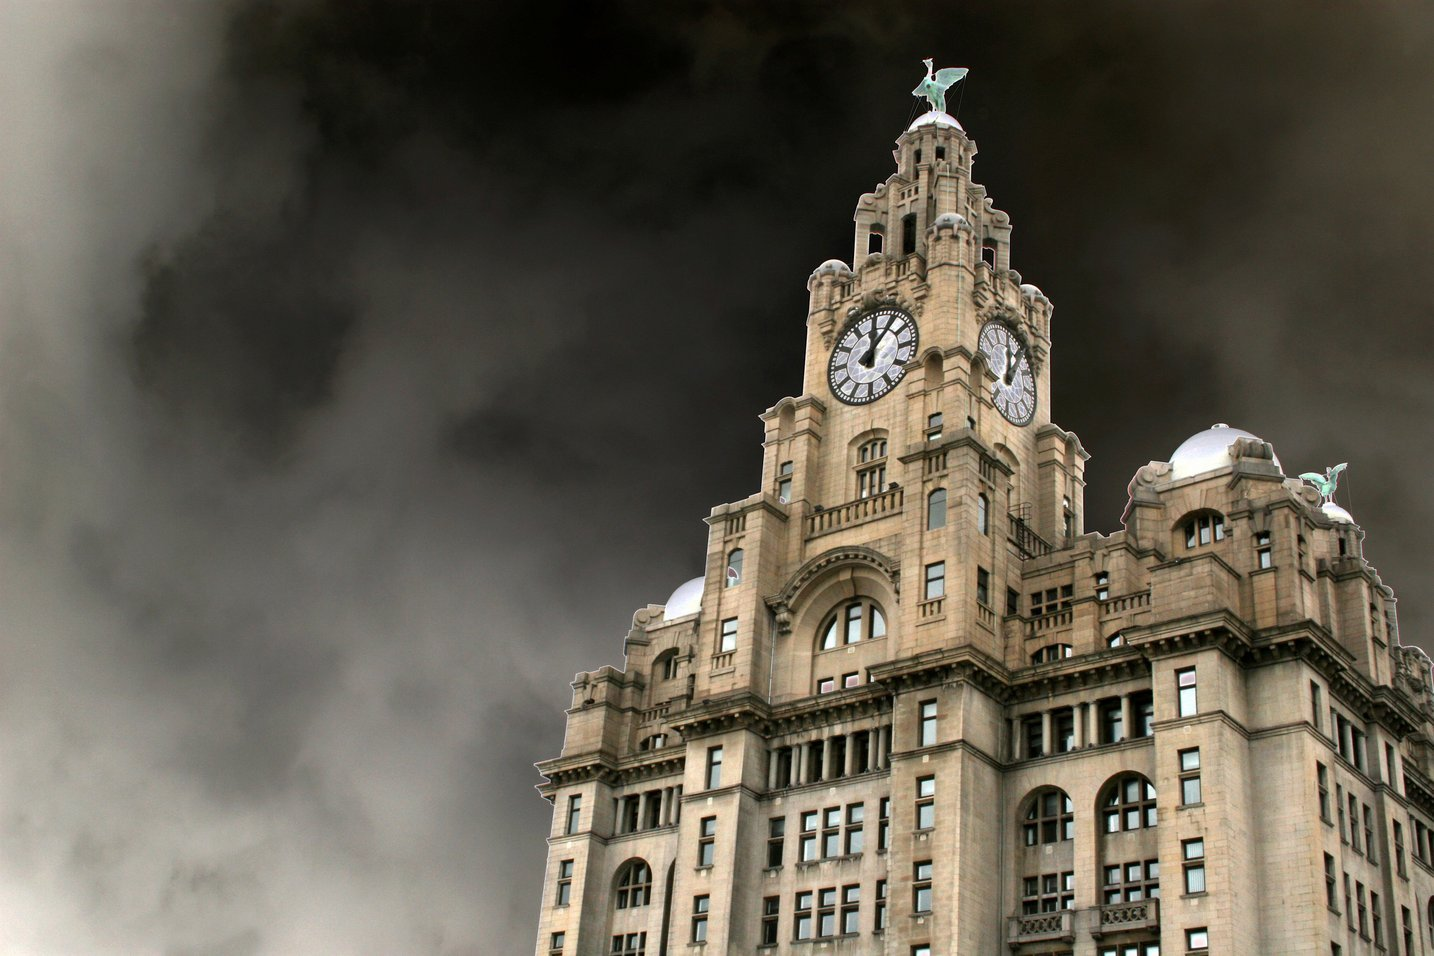 The Royal Liver Building, Pier Head, Liverpool, Merseyside, UK